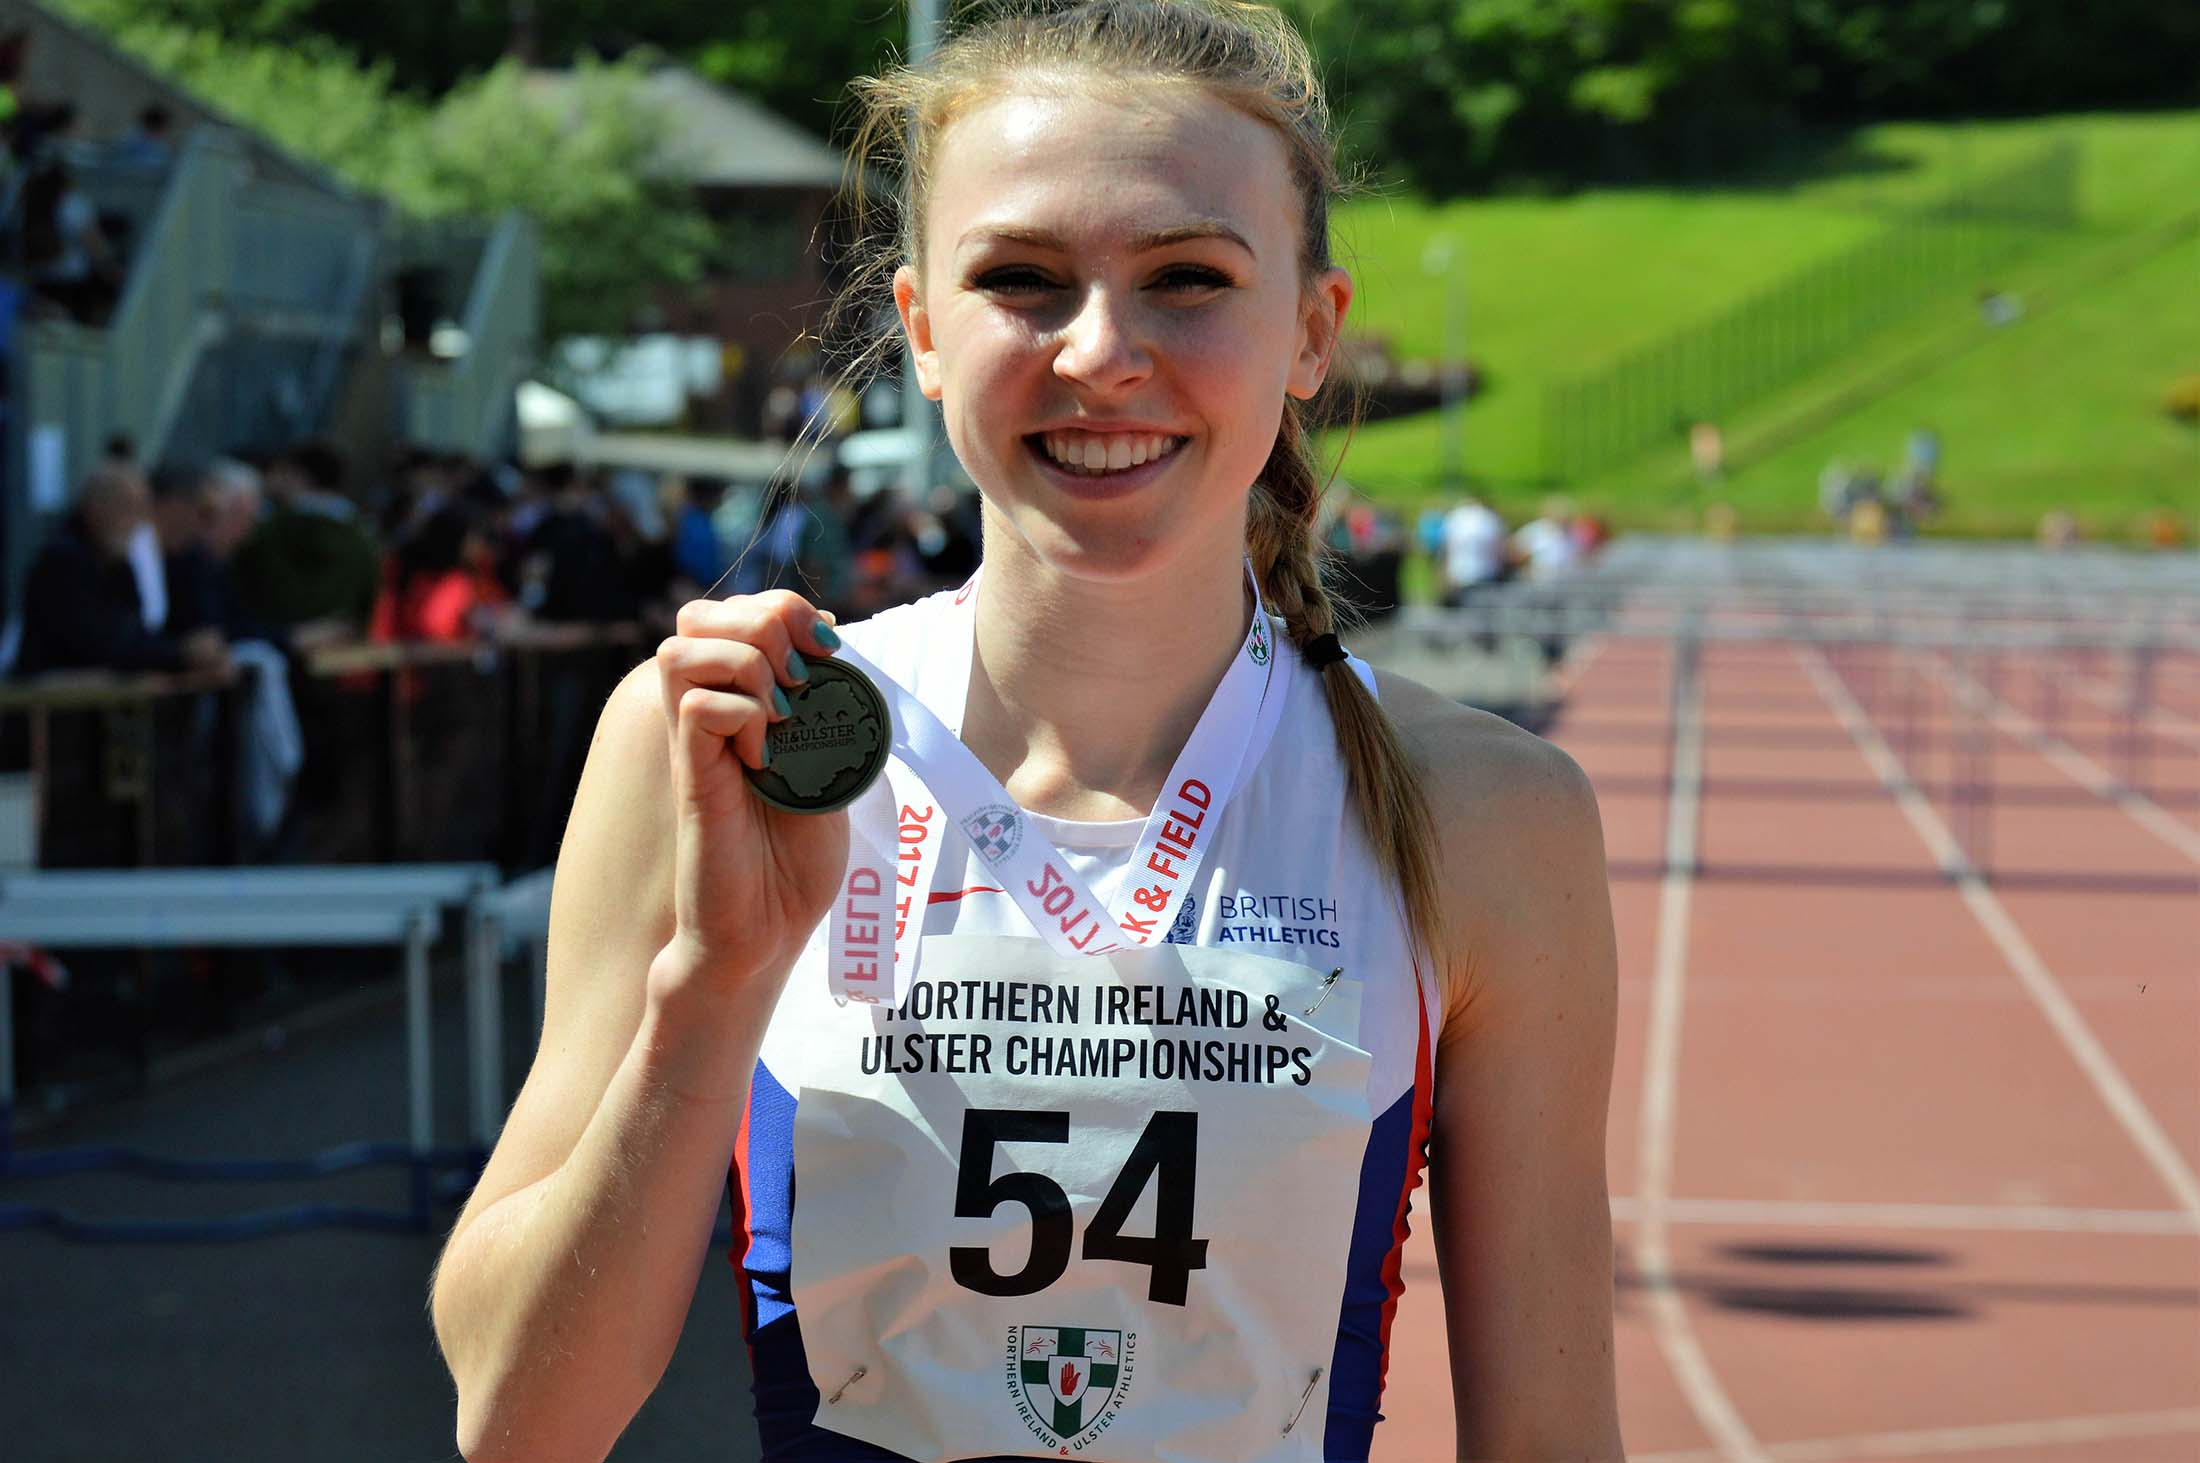 Mollie Courtney Claims England Championships Bronze